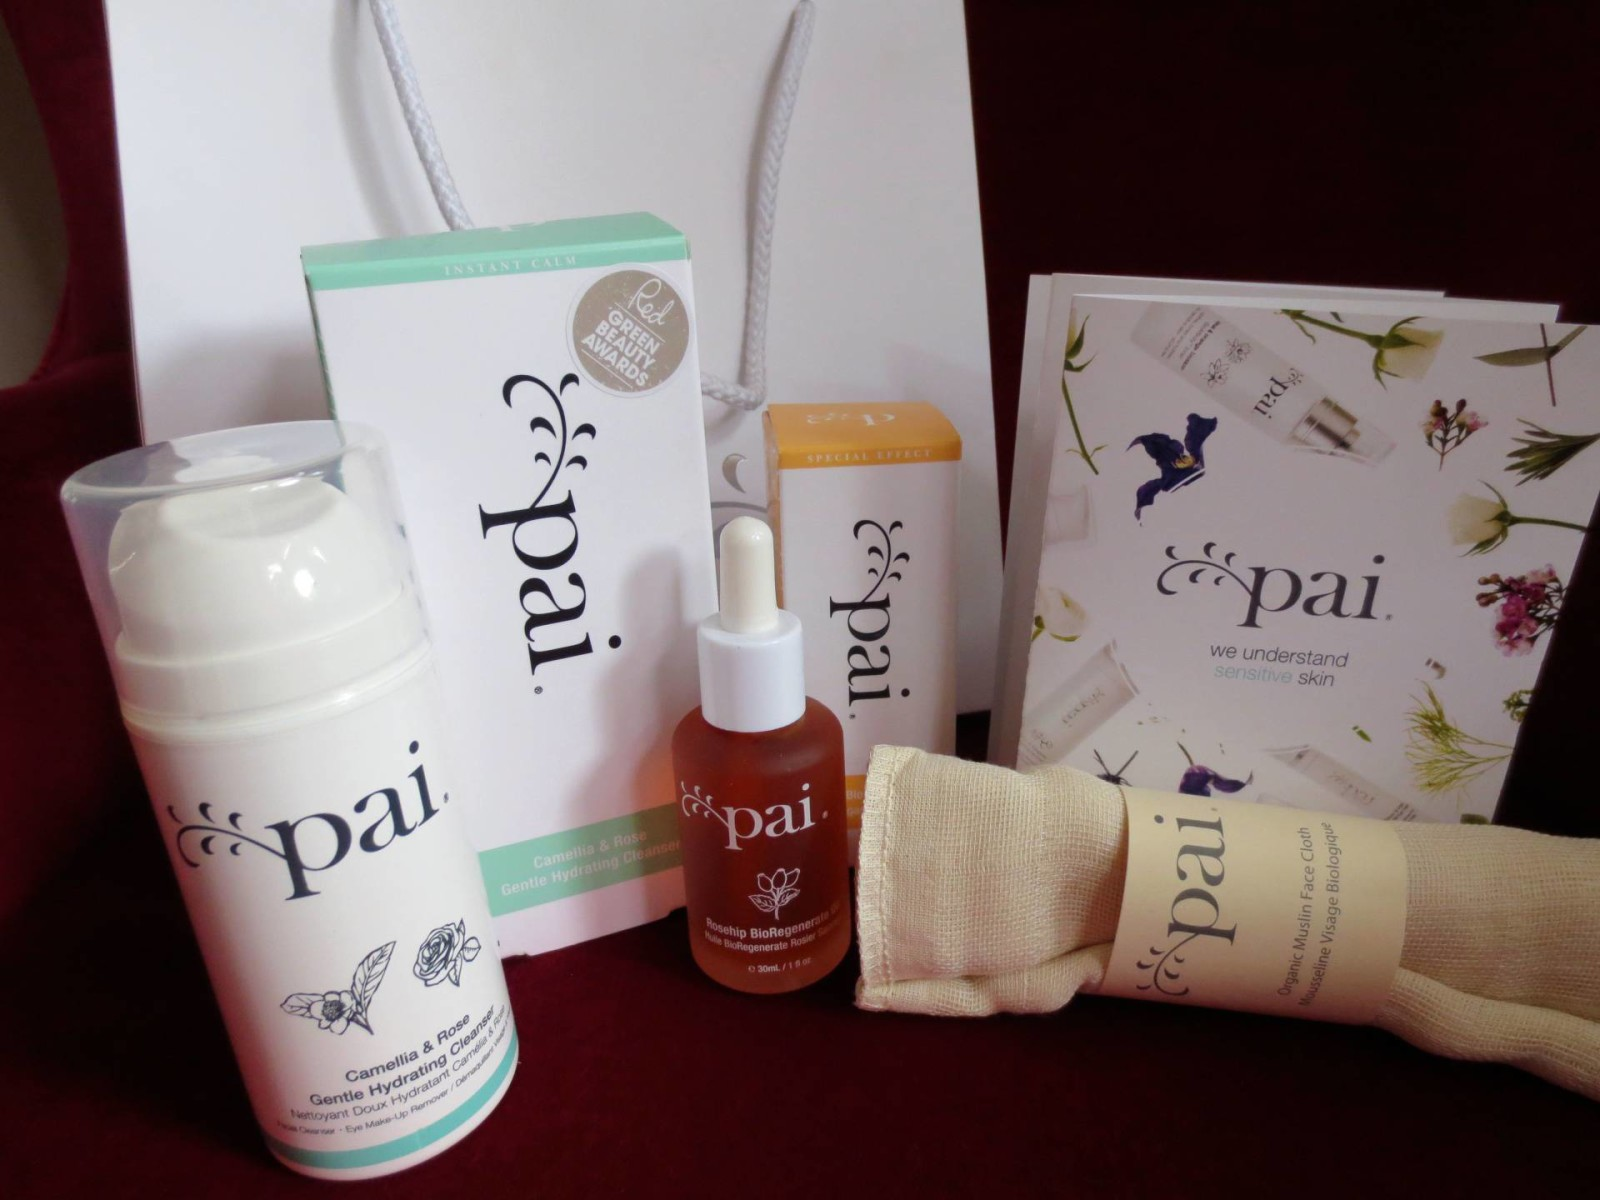 Pai Skincare's founder is an inspiration, and yes I do want healthy, balanced skin!